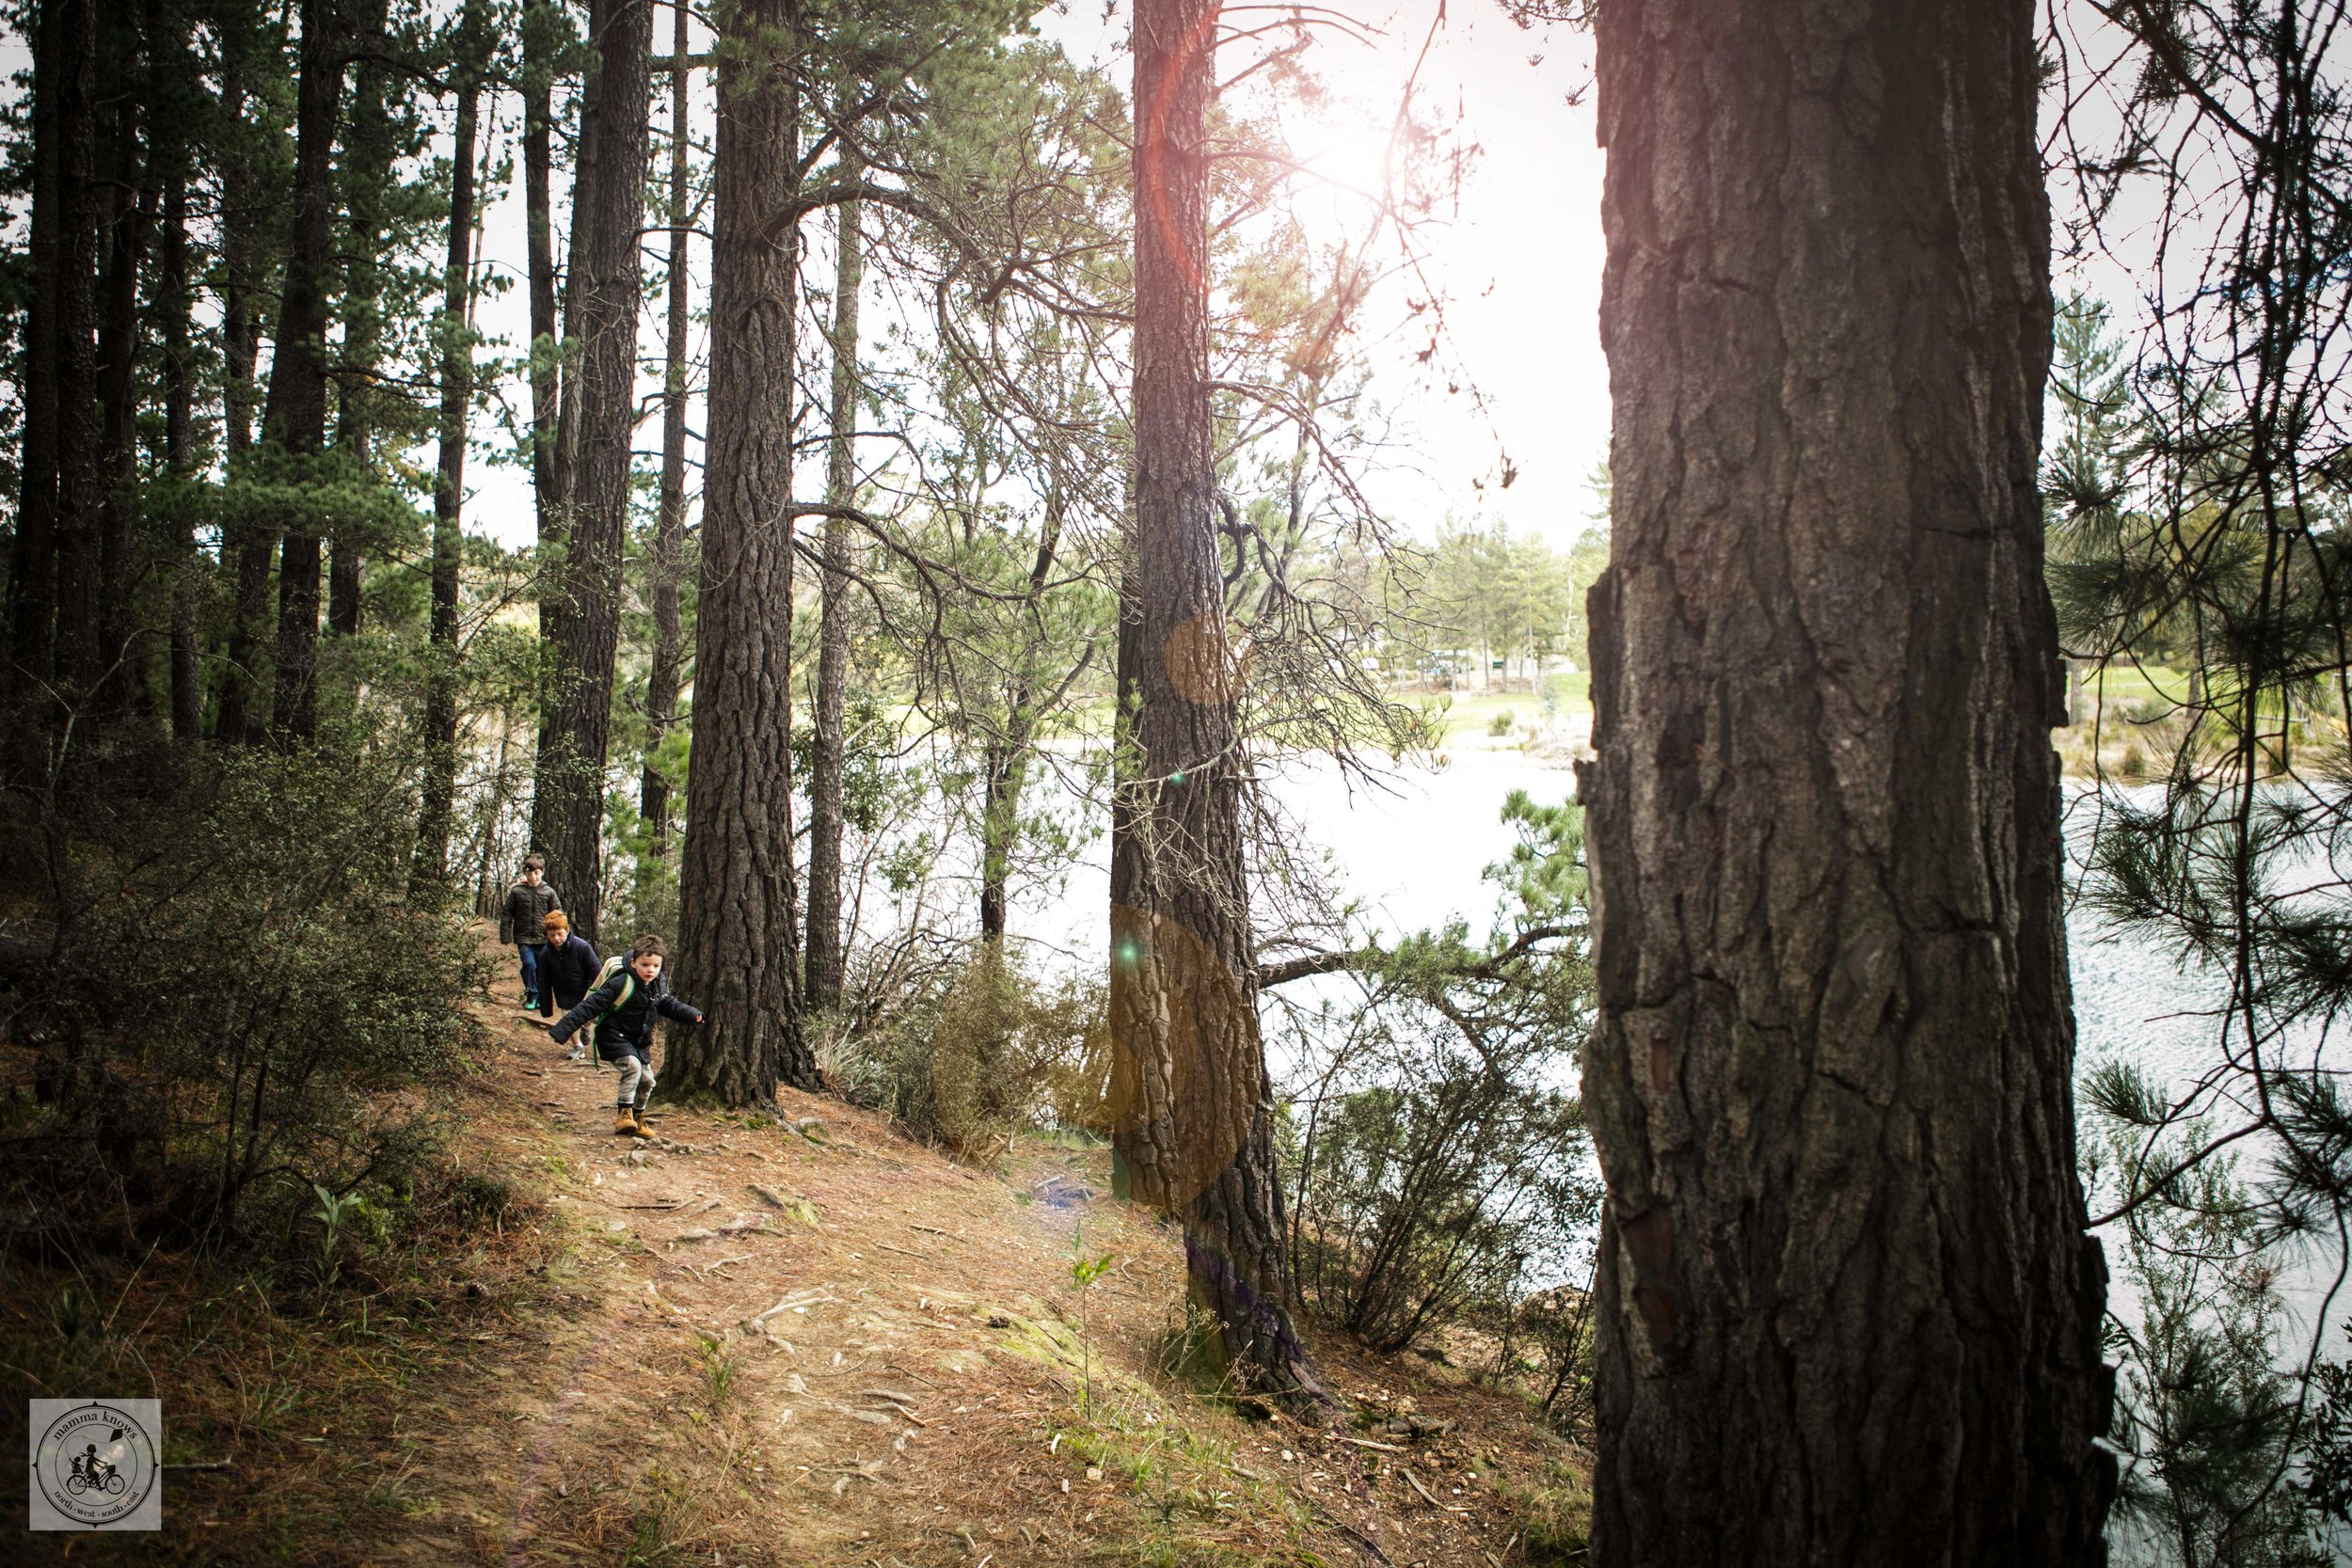 St+Georges+Lake+Creswick+Mamma+Knows+West+(1+of+1).jpg